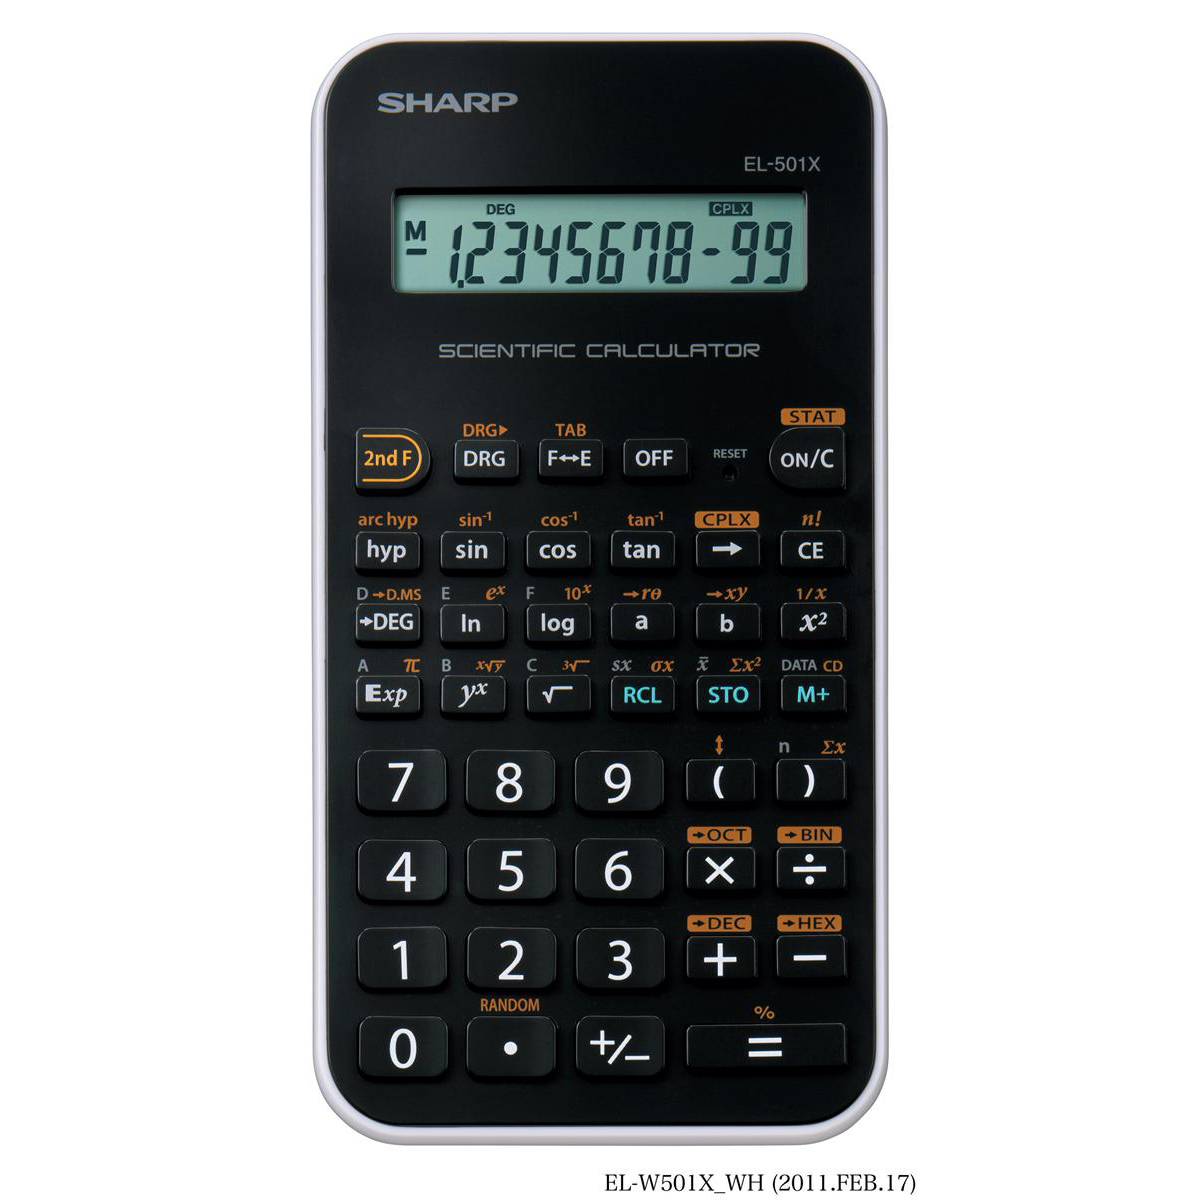 Image for Sharp Junior Handheld Scientific Calculator 10 Digit Battery Power 75x10x144mm Black Ref EL-501X